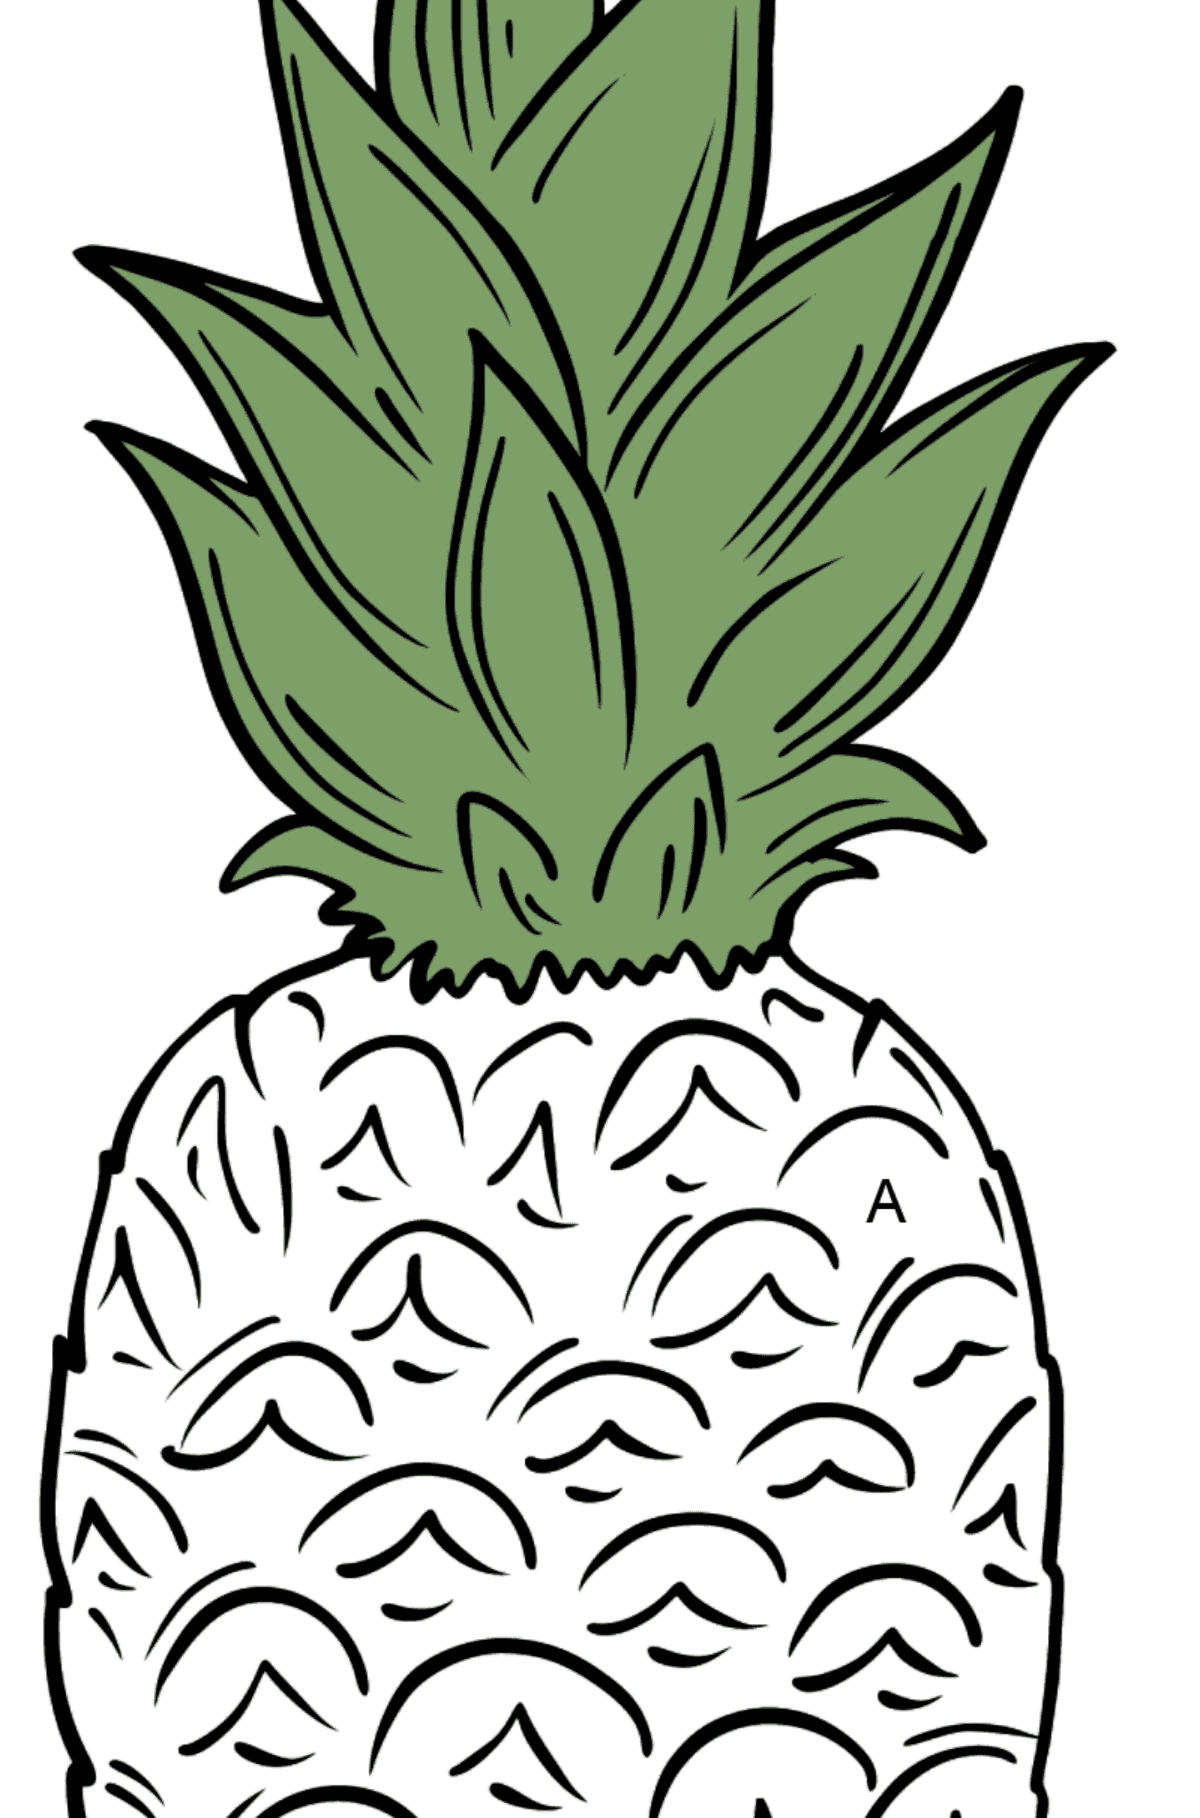 Pineapple coloring page - Coloring by Letters for Kids